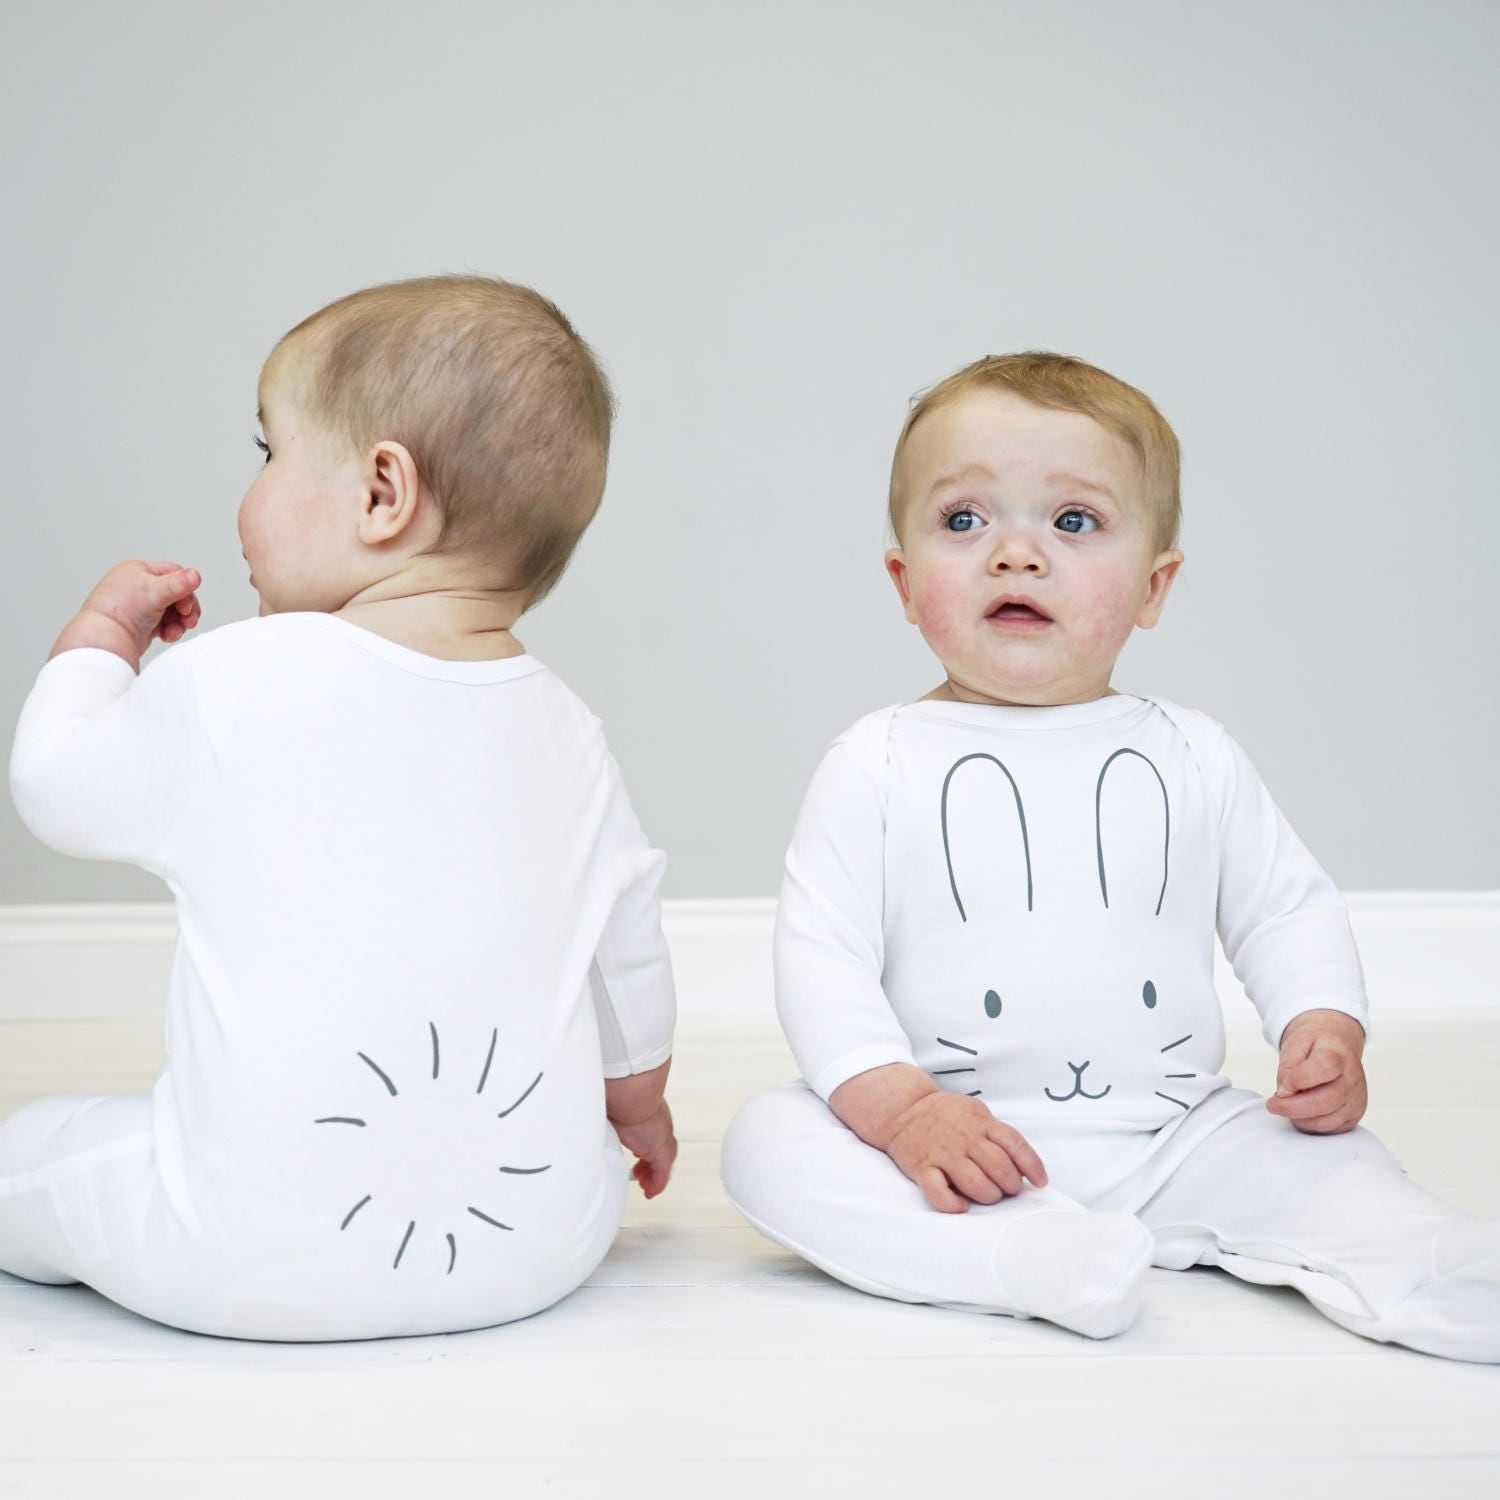 Bunny Face Sleepsuit  Bunny Face Romper  Bunny Face and Tail sleepsuit